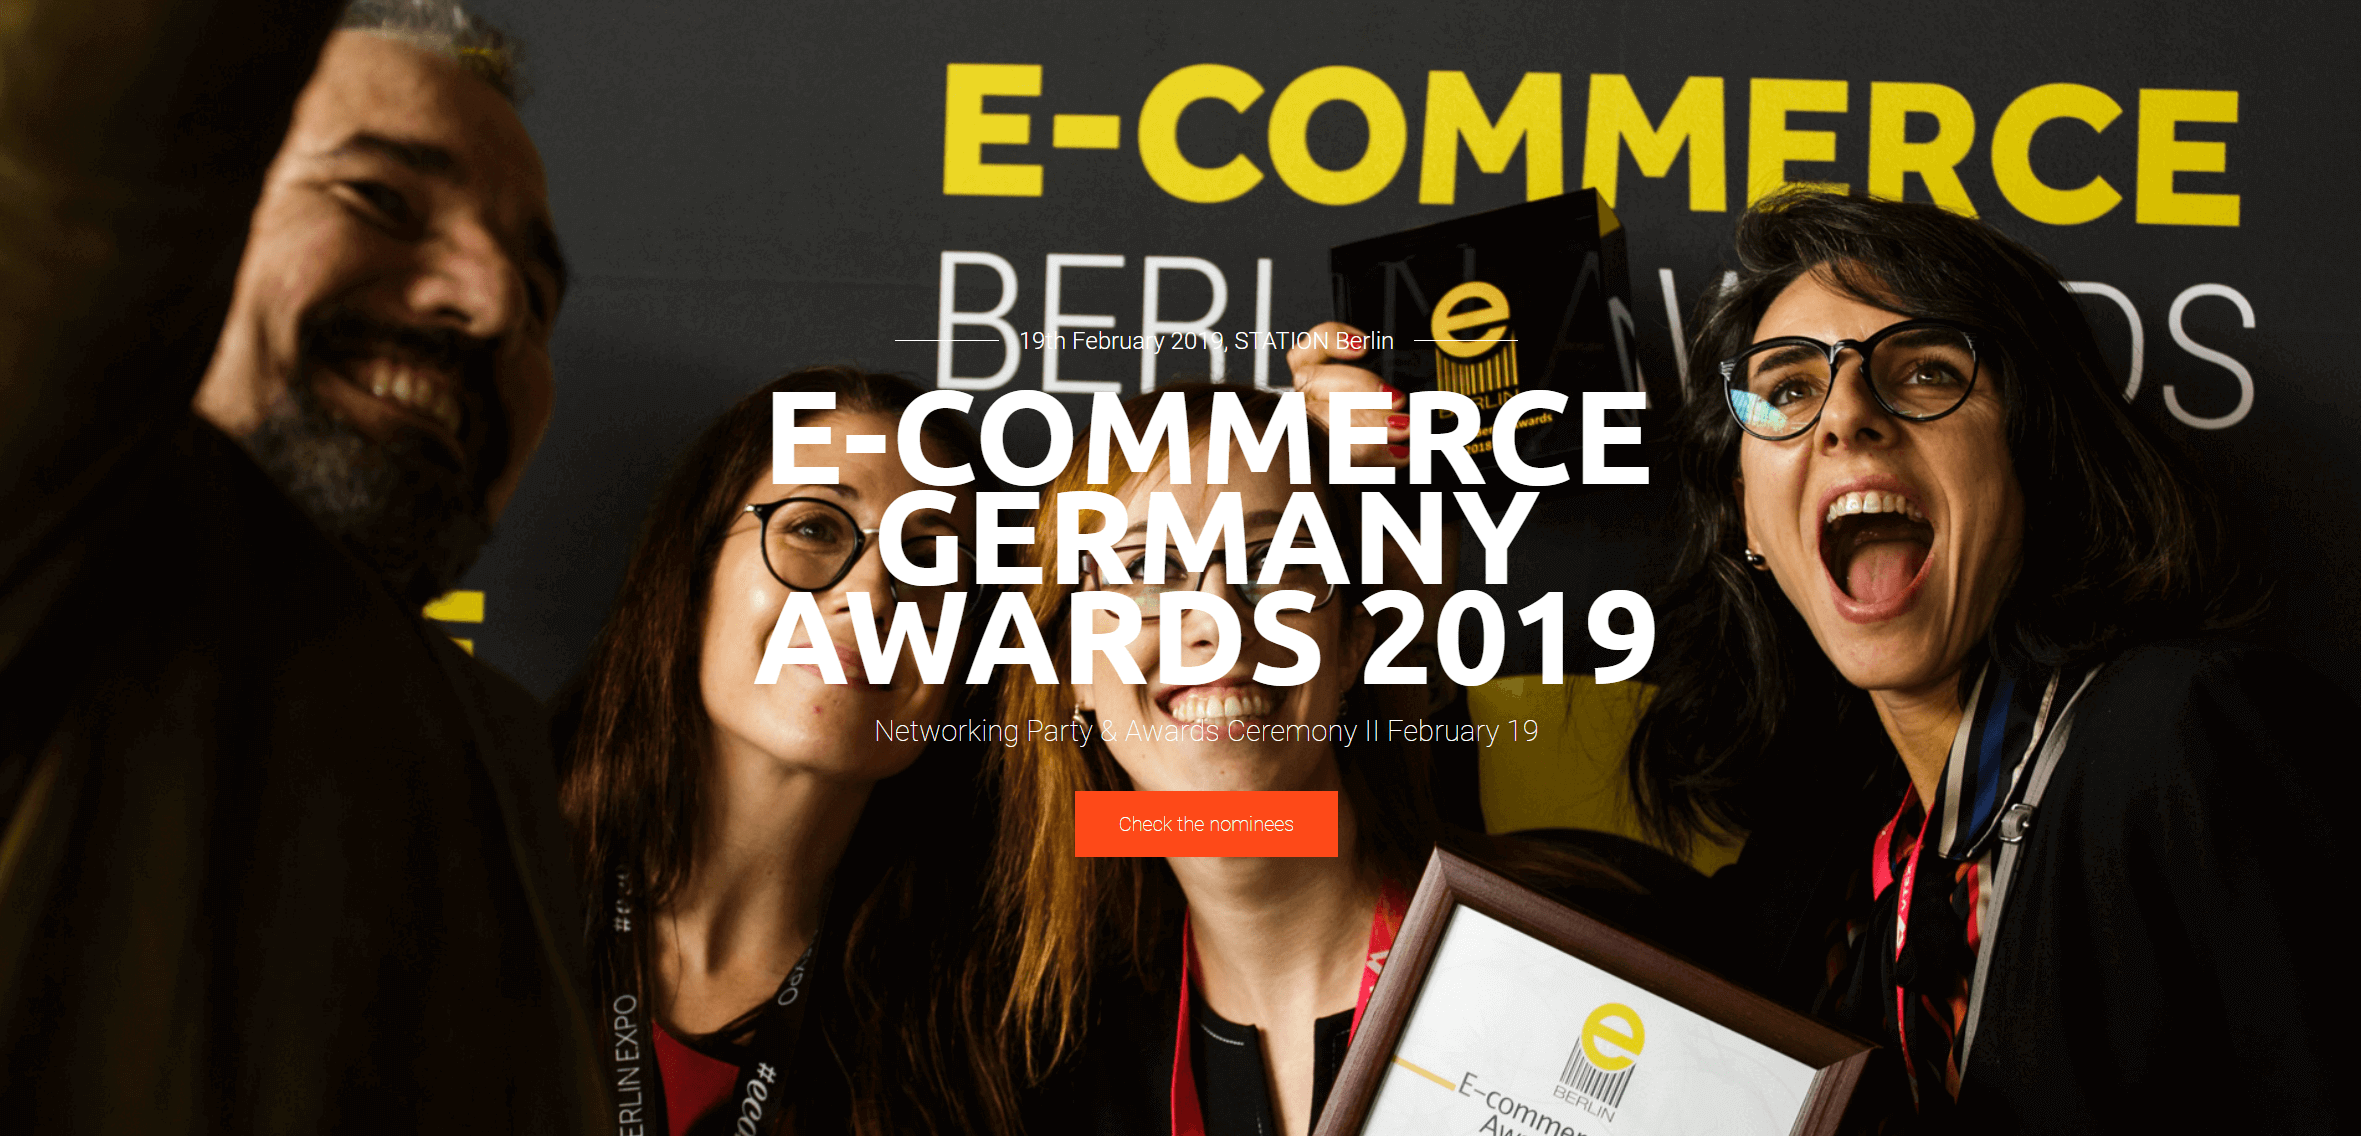 E commerce Germany Awards 2019